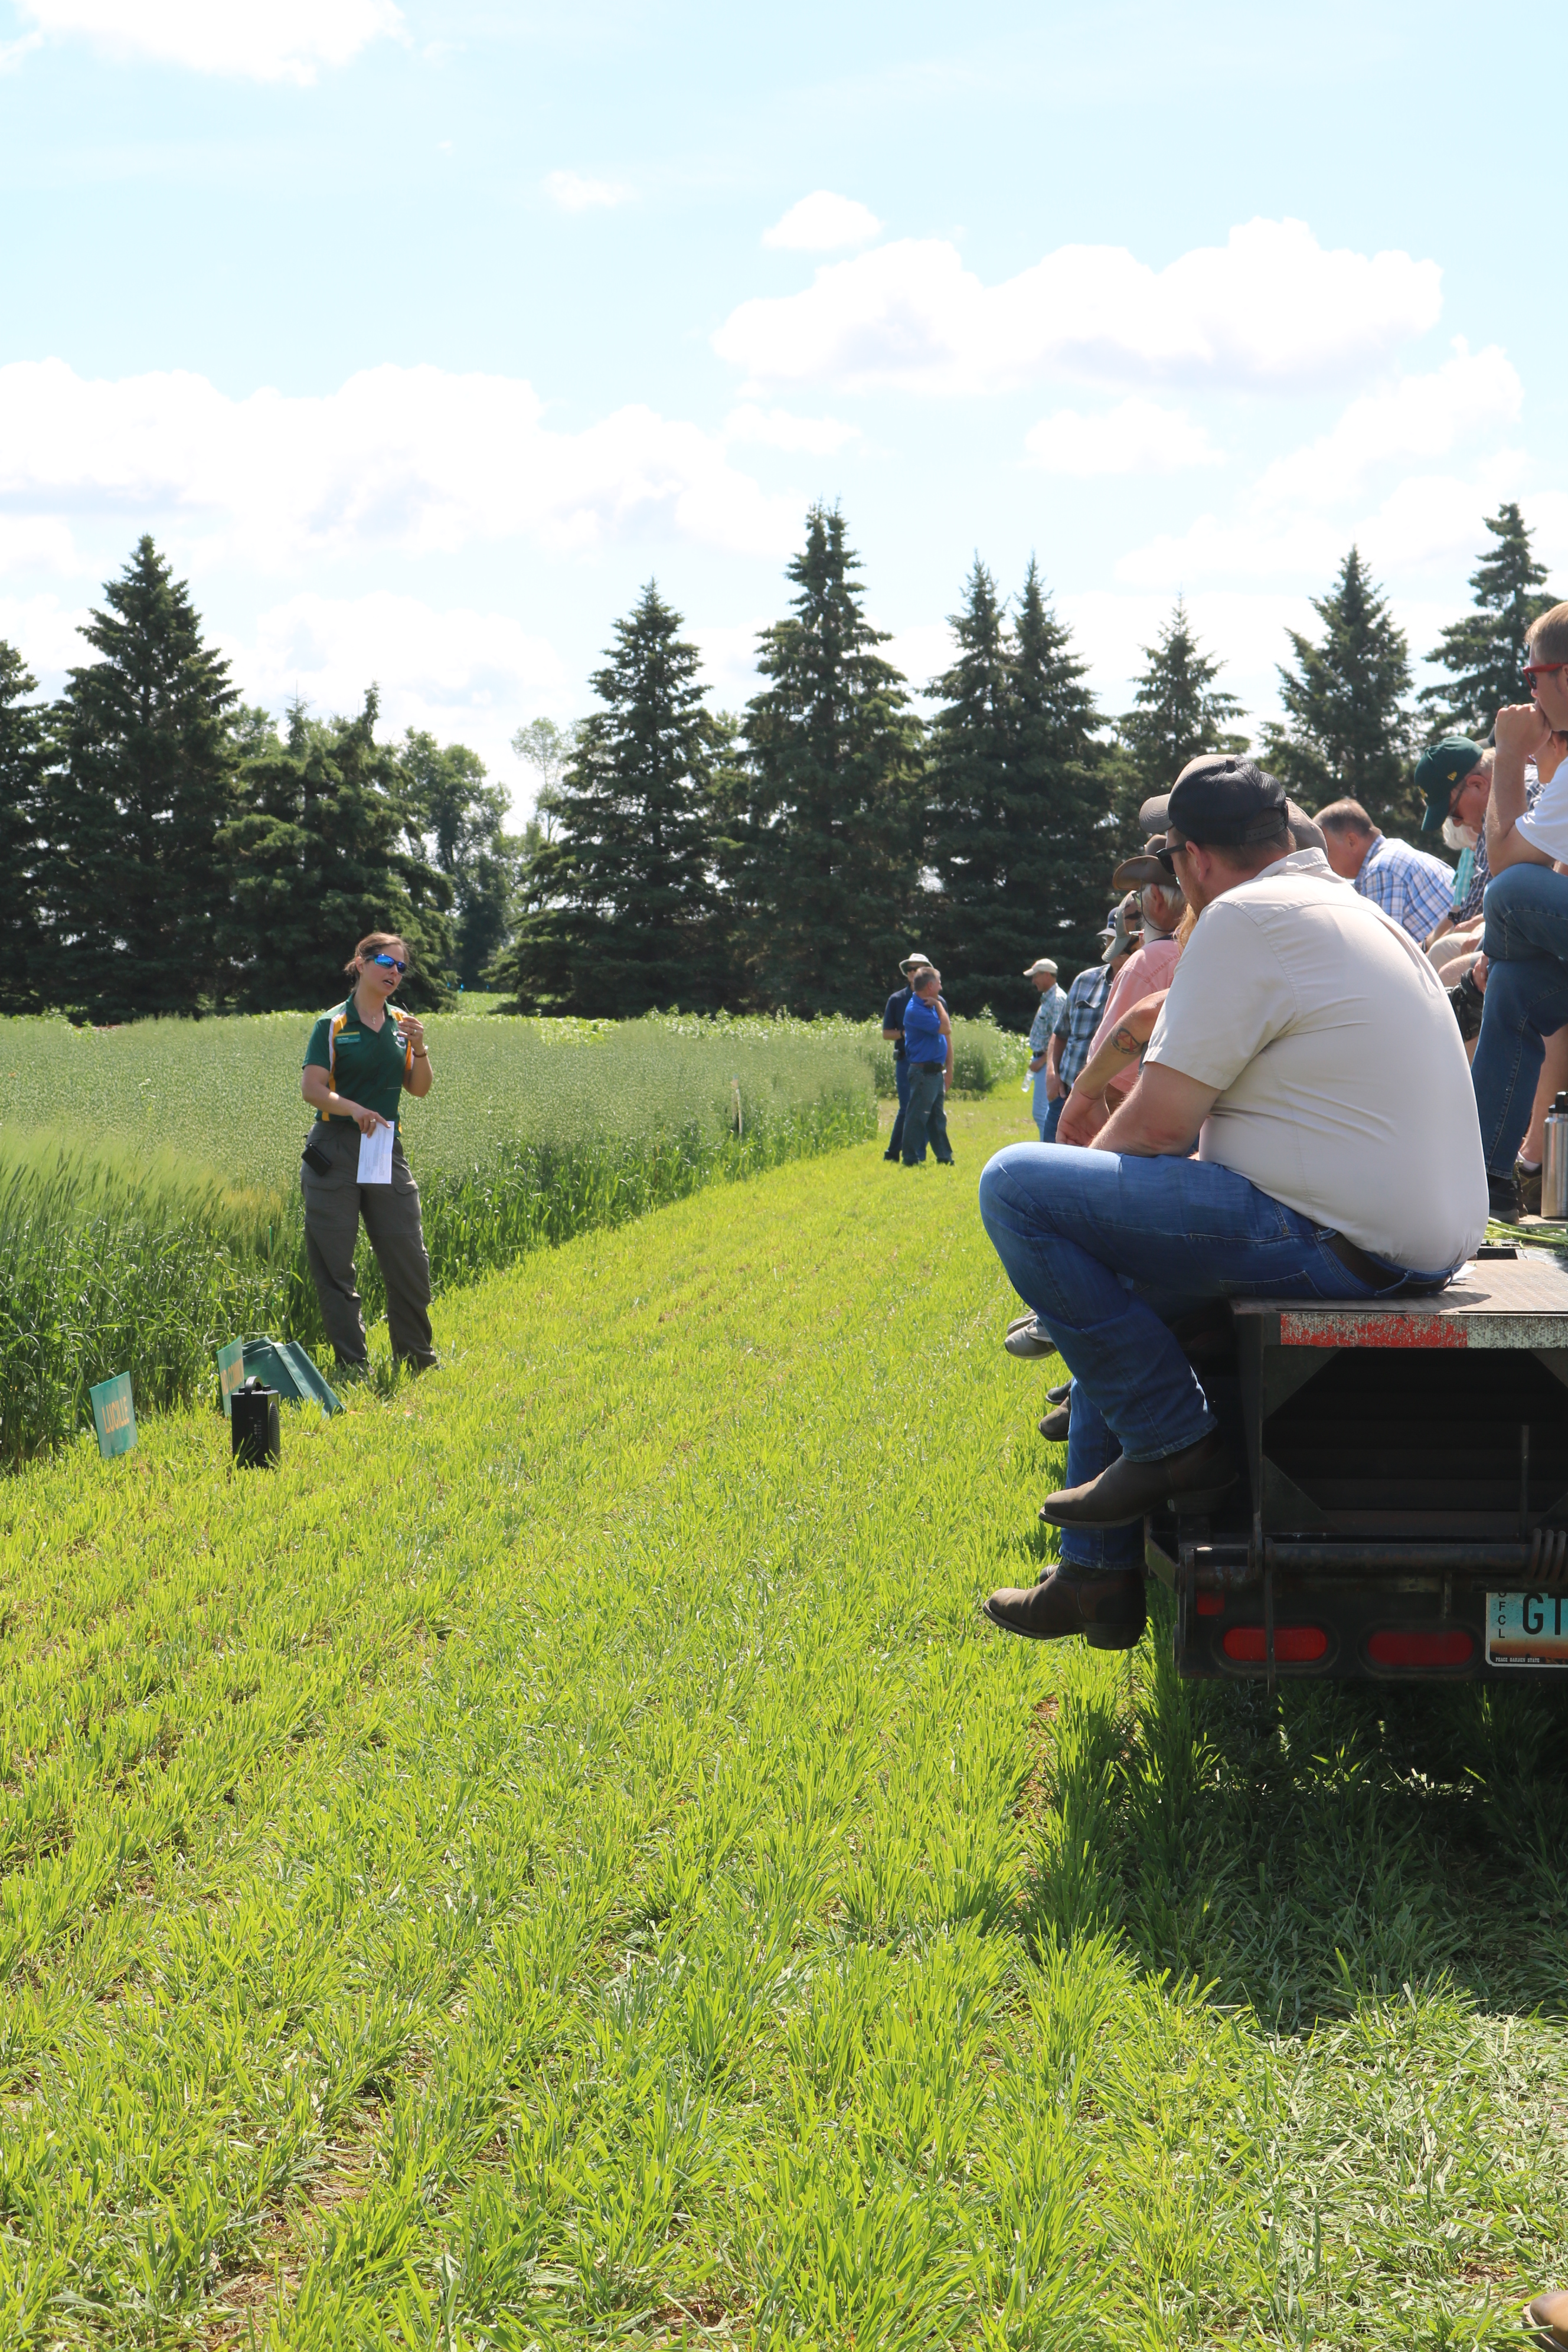 Producers and others learn about organic and sustainable agriculture during a field tour at NDSU's Carrington Research Extension Center. (NDSU photo)